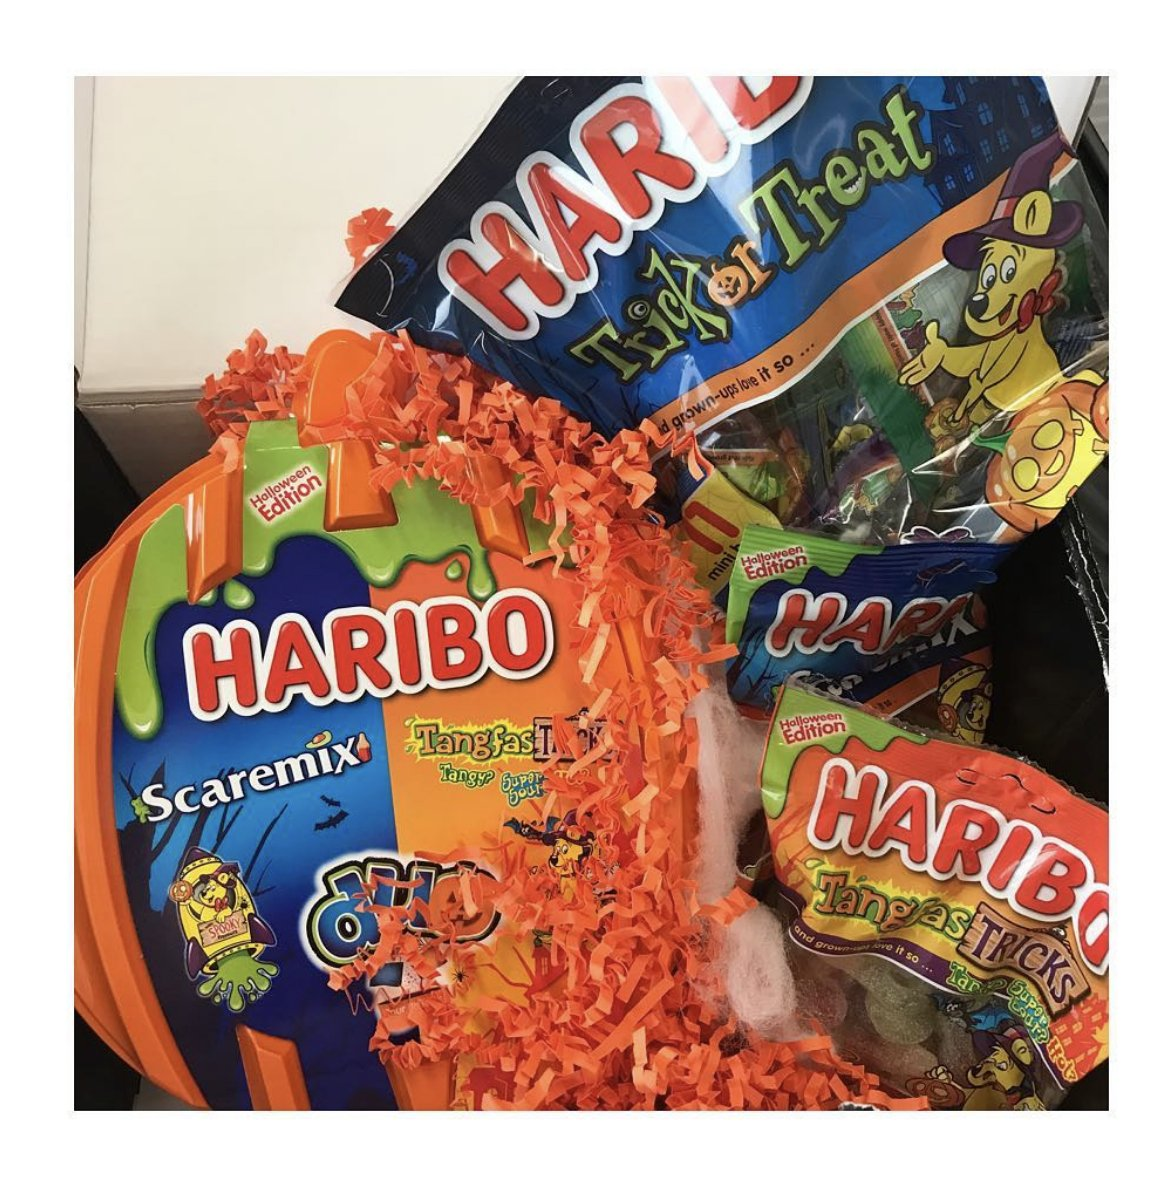 Happy halloween! Head over to our Instagram to win a load of @OfficialHARIBO goodies...